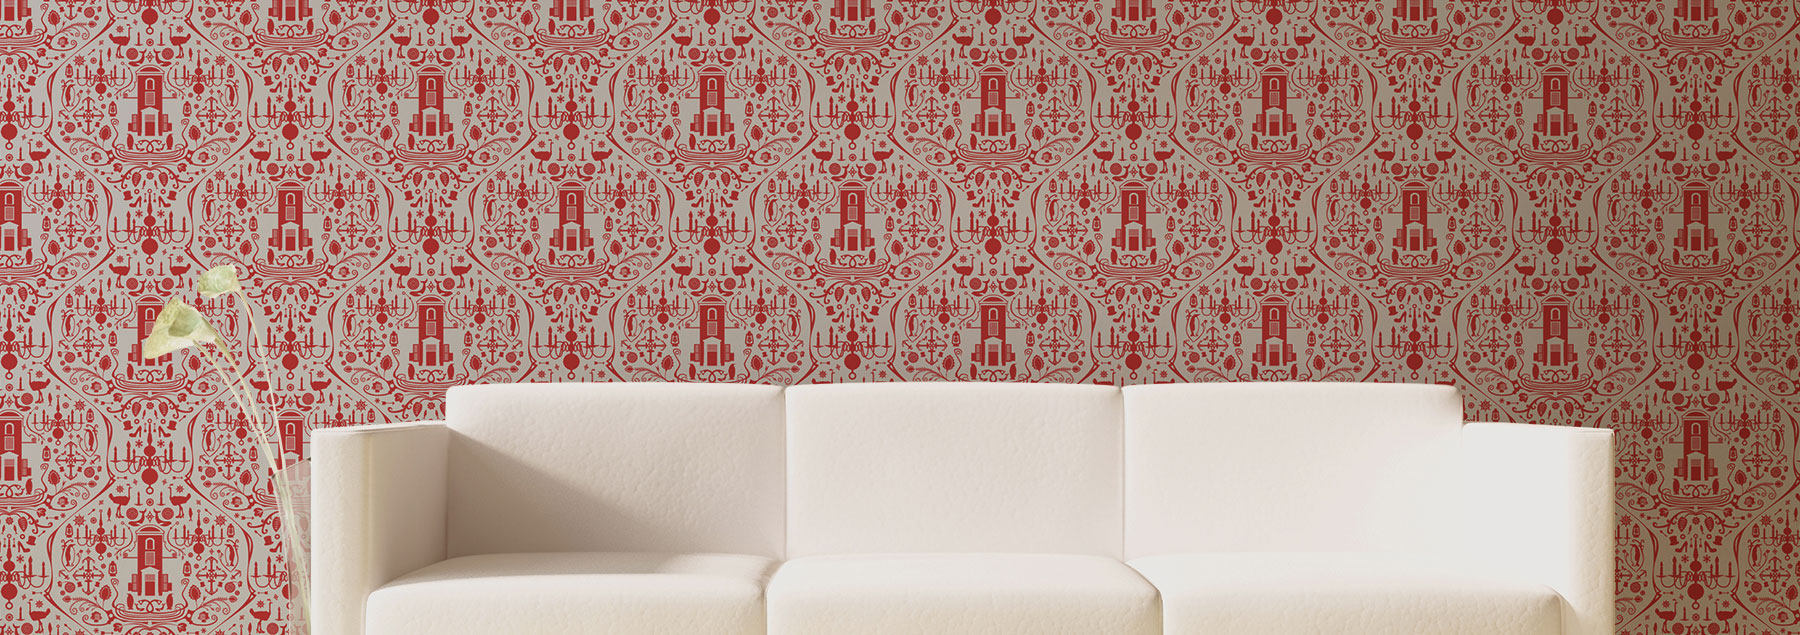 bigstock-Couch-on-a-blank-wall-5830479